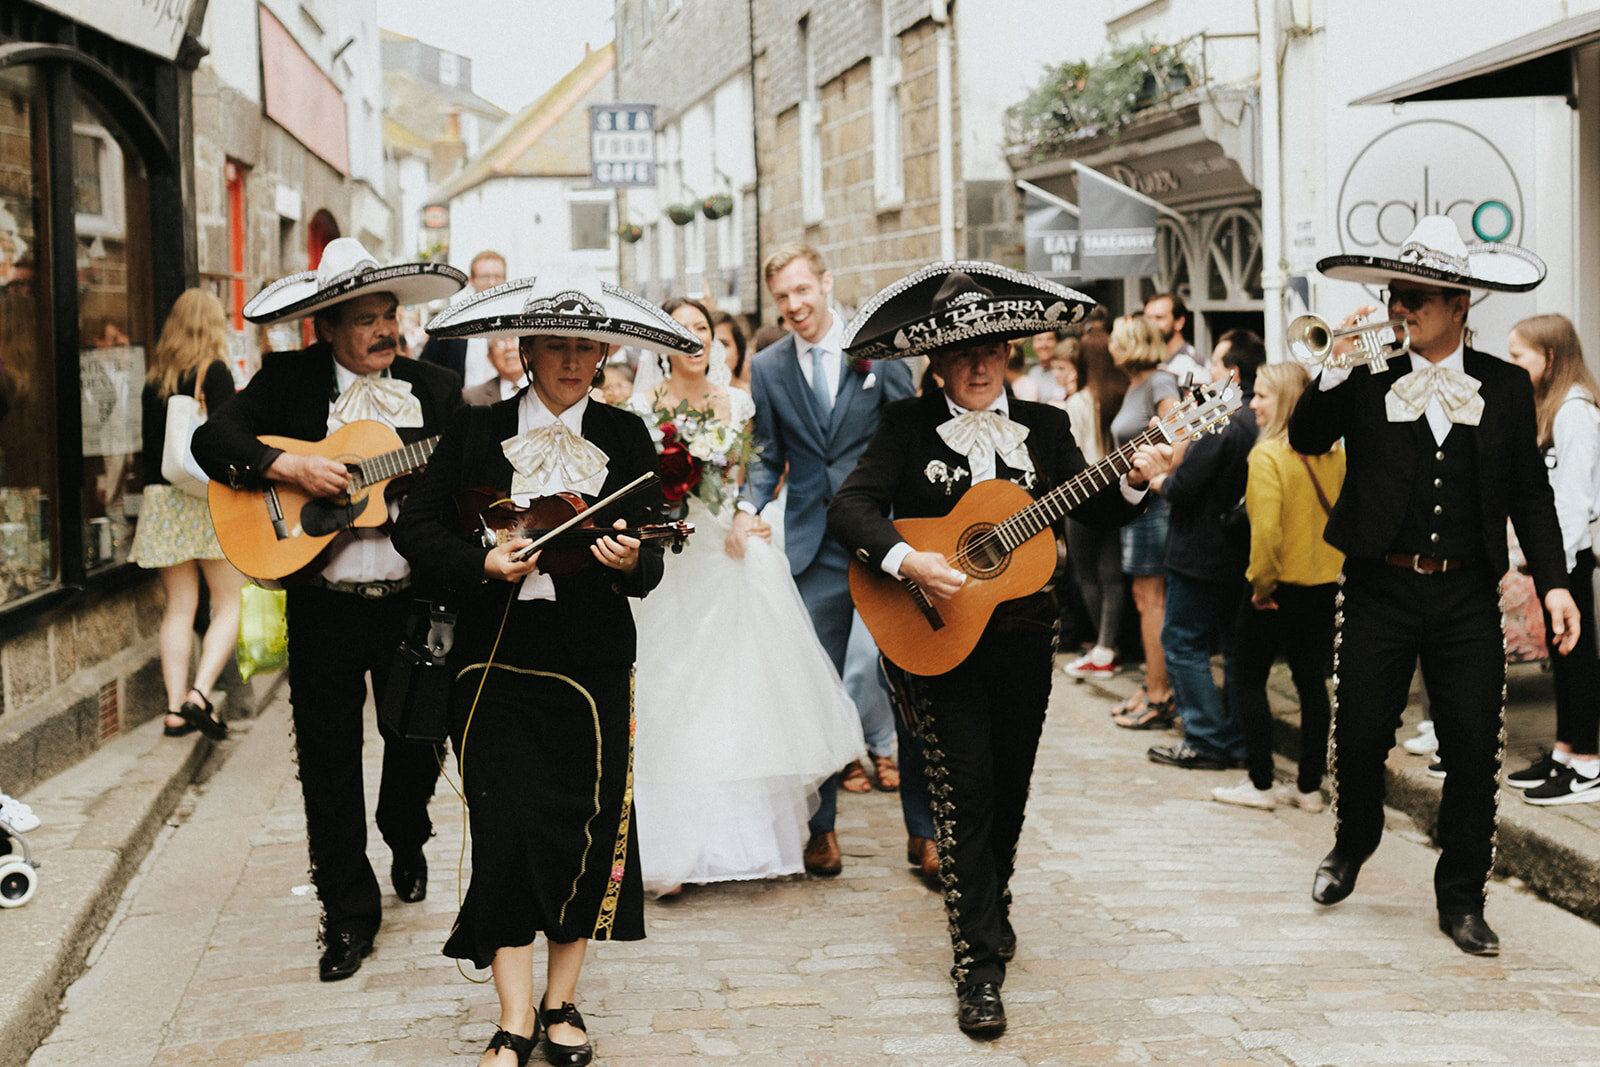 UK-wedding-Destination-Photograher-st-ives-cornwall-london-photographer-elopement-claudia-pj-wedding-1680_websize.jpg